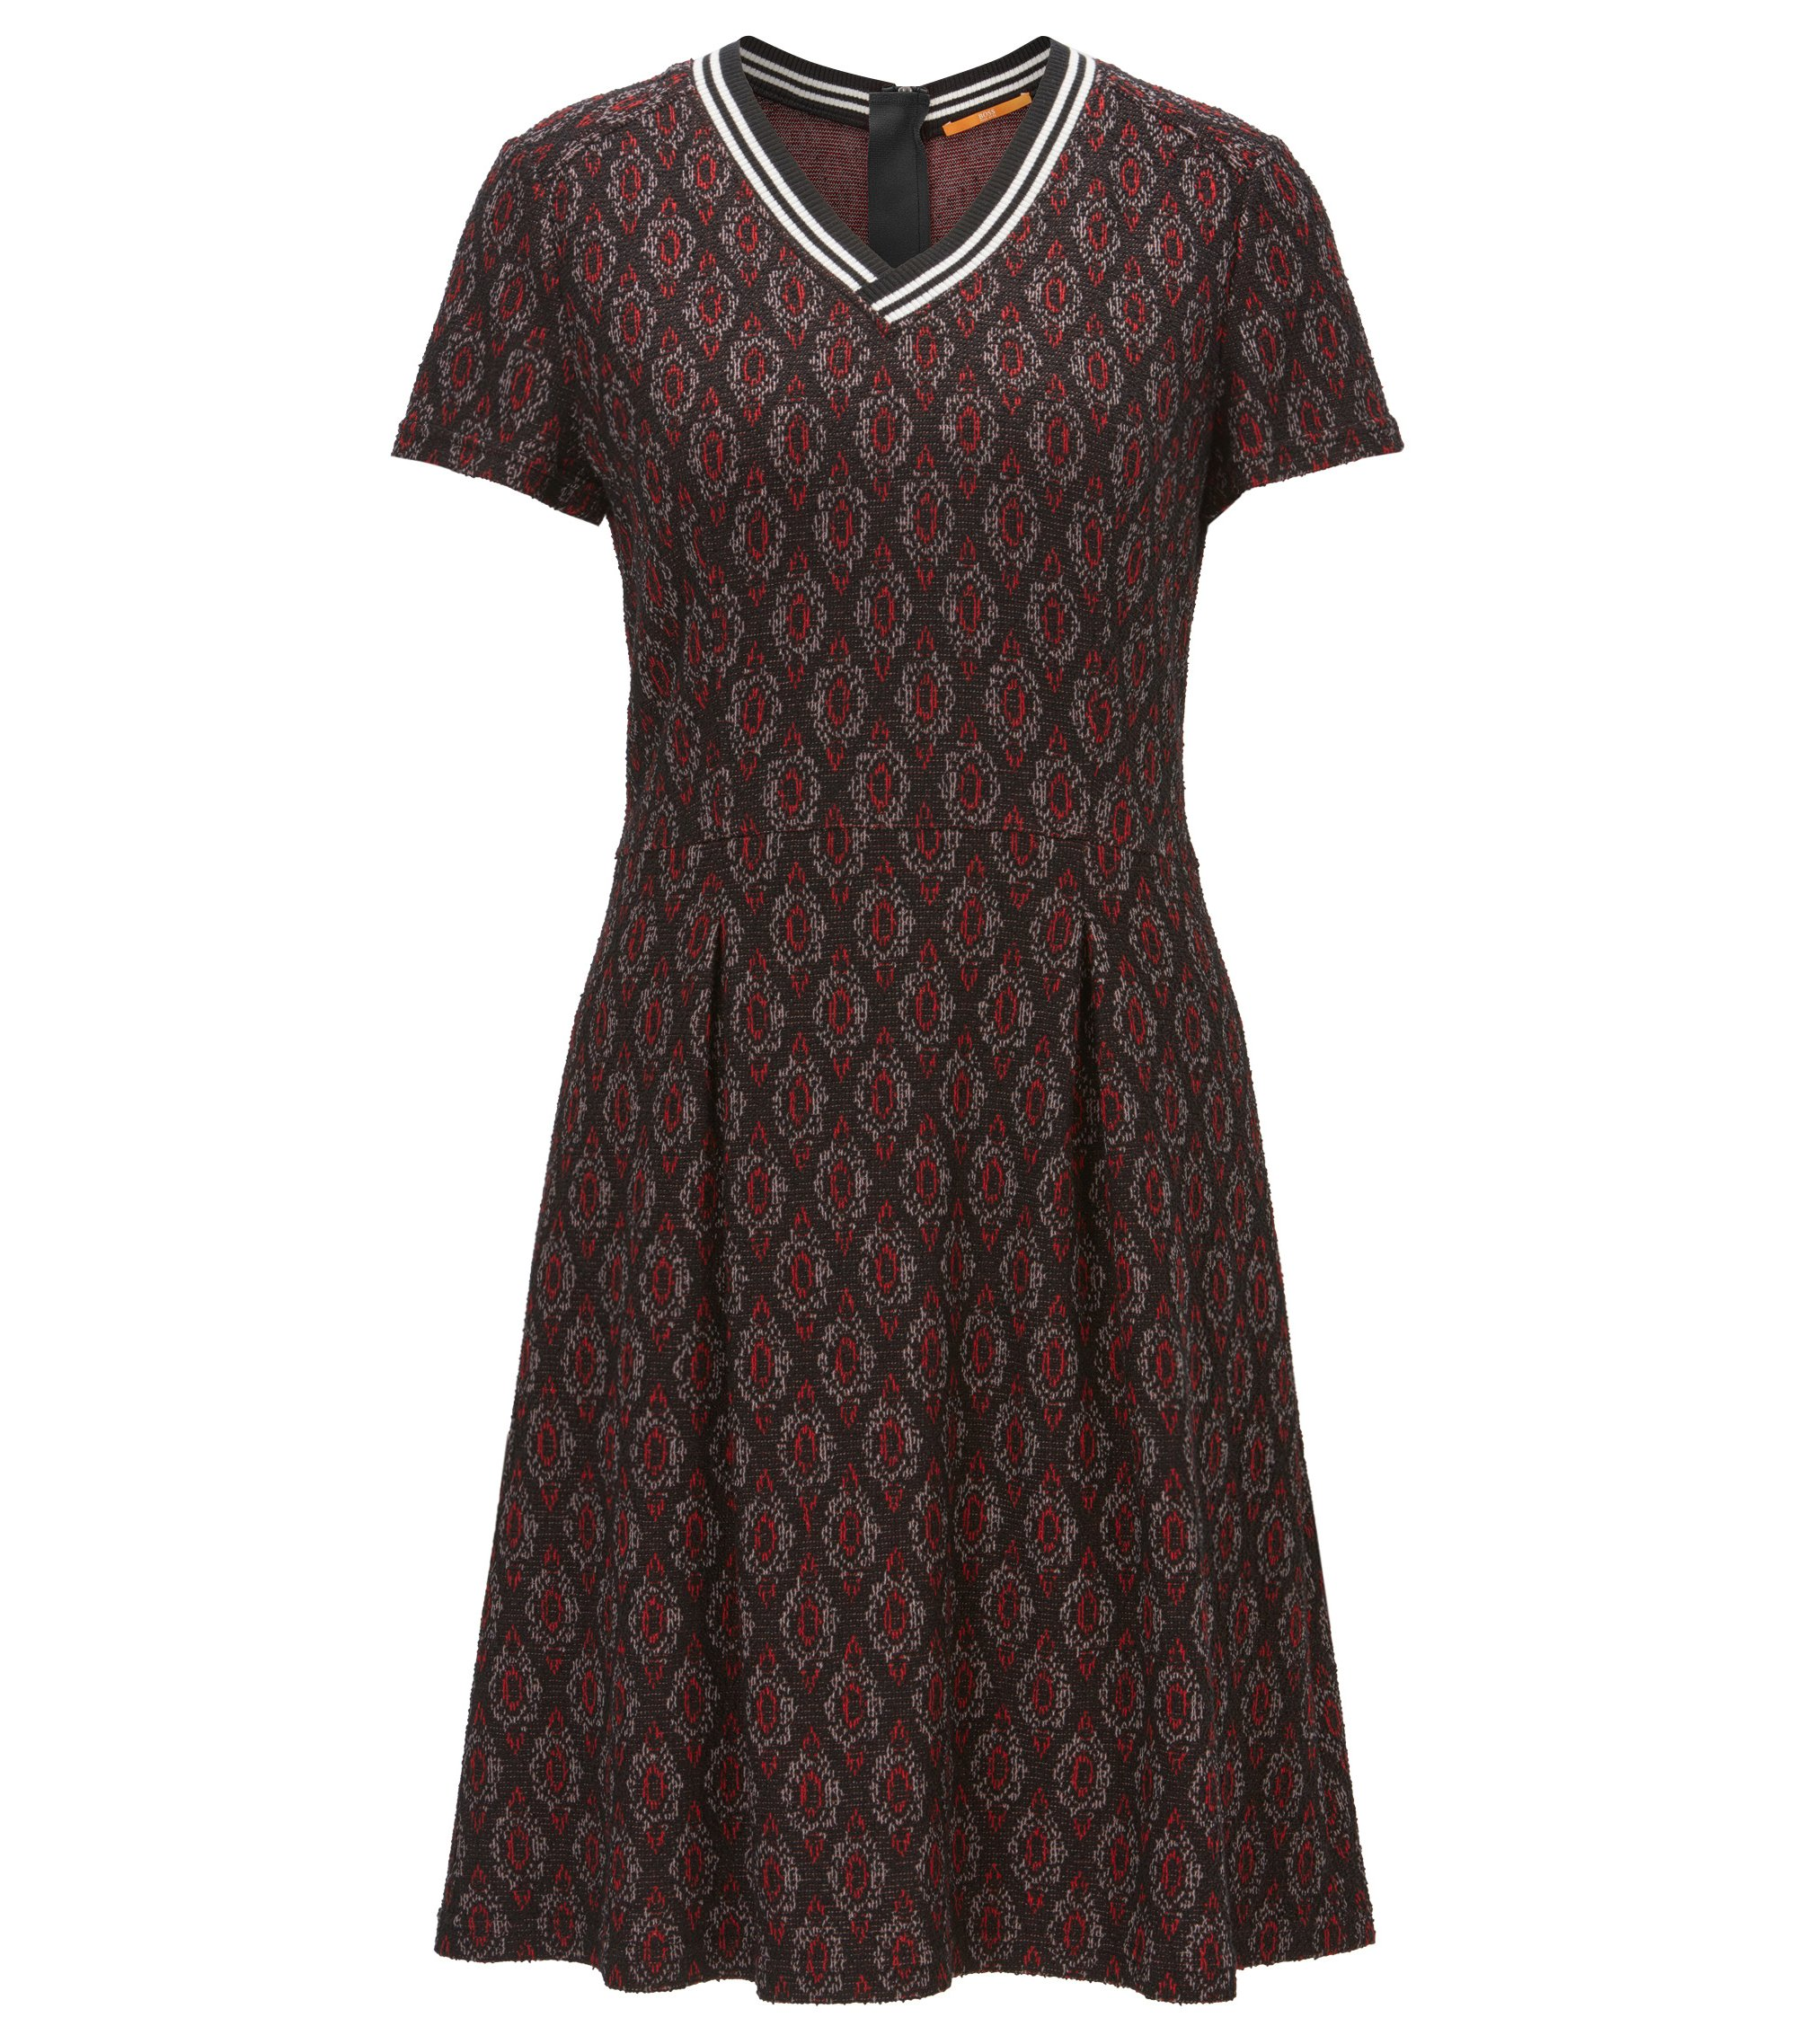 Waisted dress in jacquard jersey, Patterned